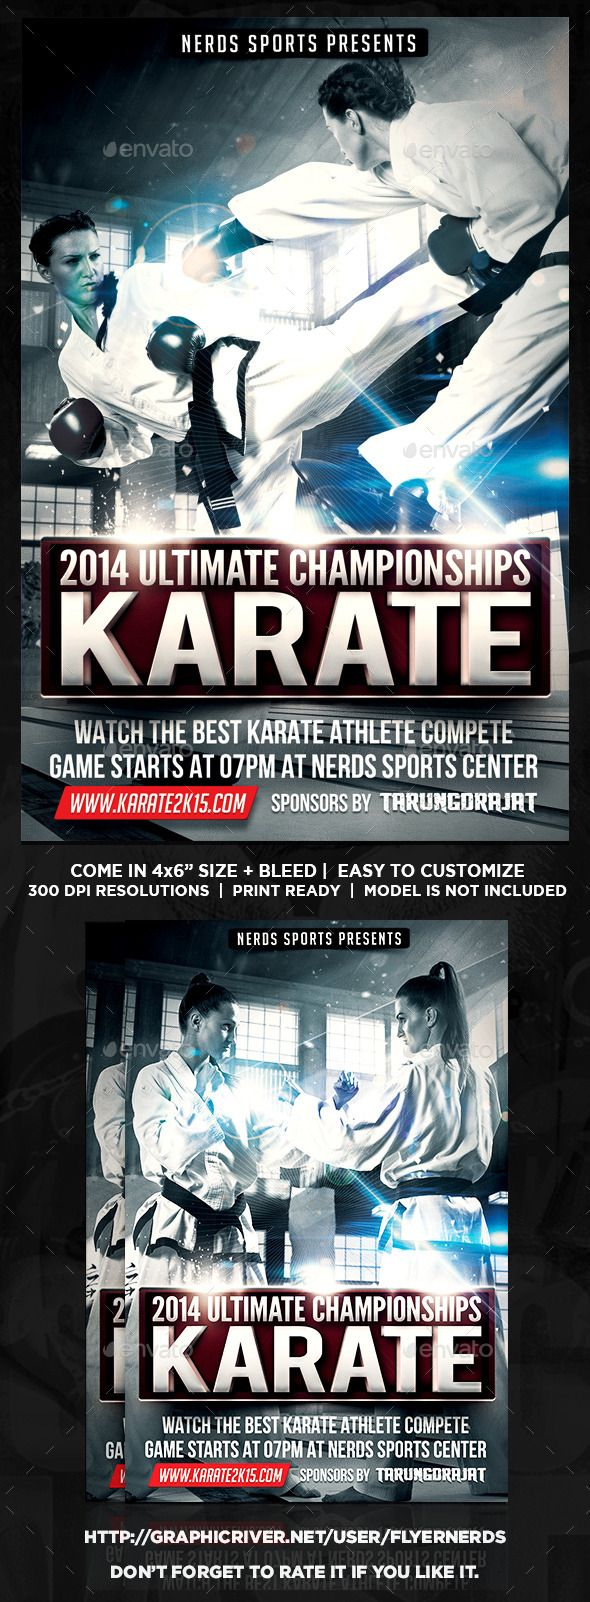 Karate Fighting Championships Sports Flyer